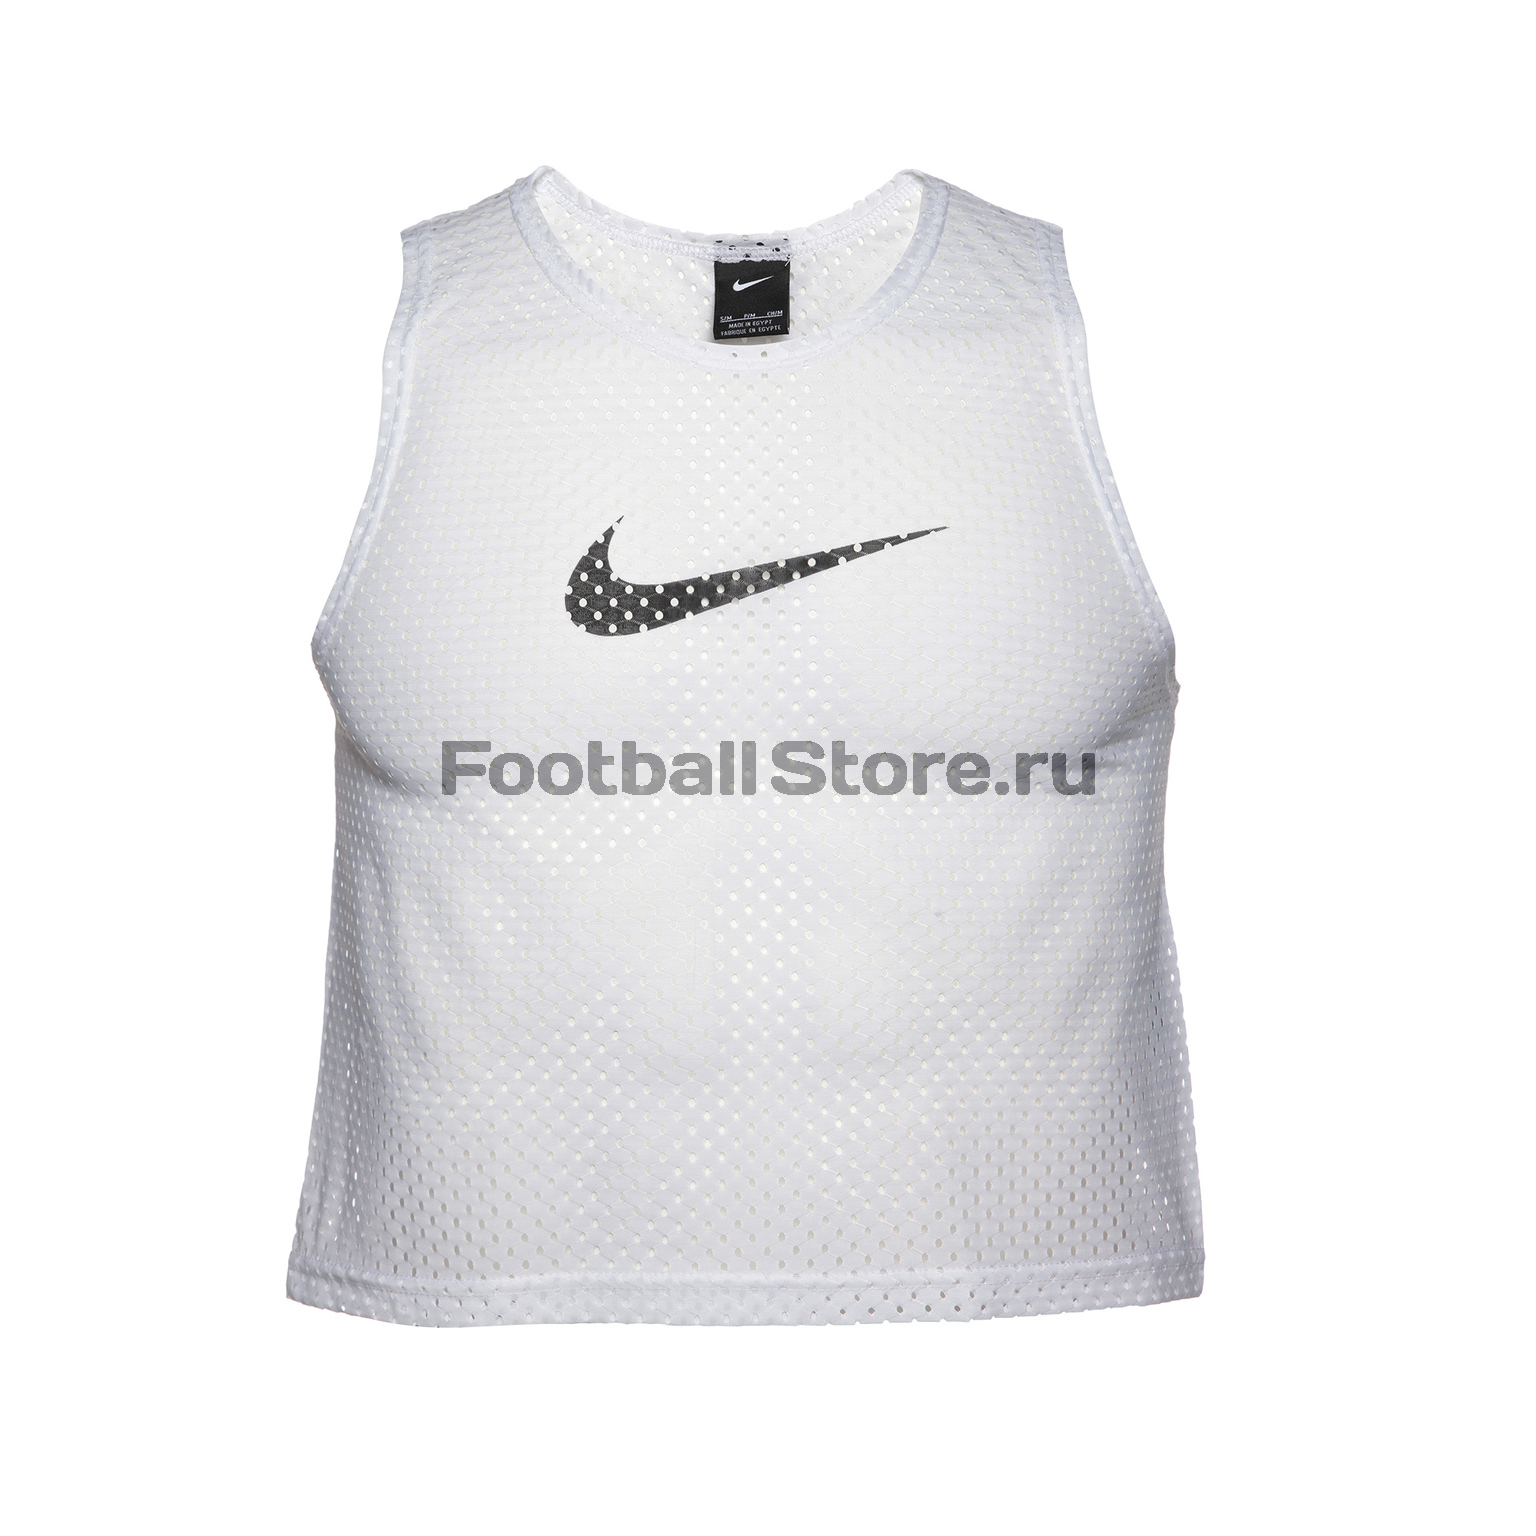 Манишка Nike training bib 725876-100